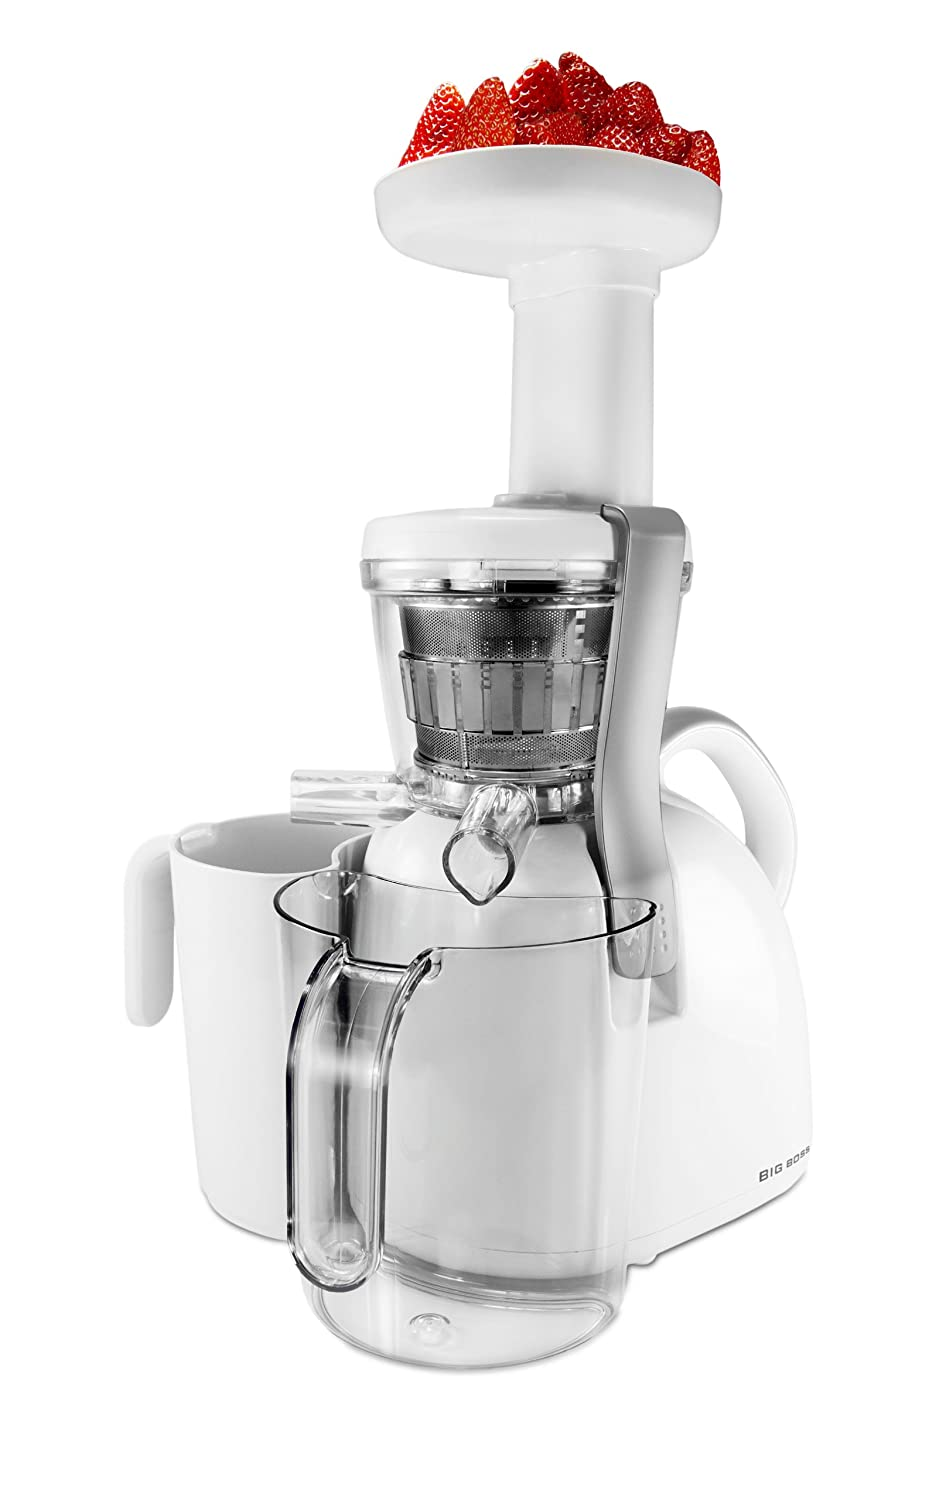 Big Boss Slow Juicer White 9192 : Big Boss 9192 Nutritionally Beneficial Slow Juicer, White eBay